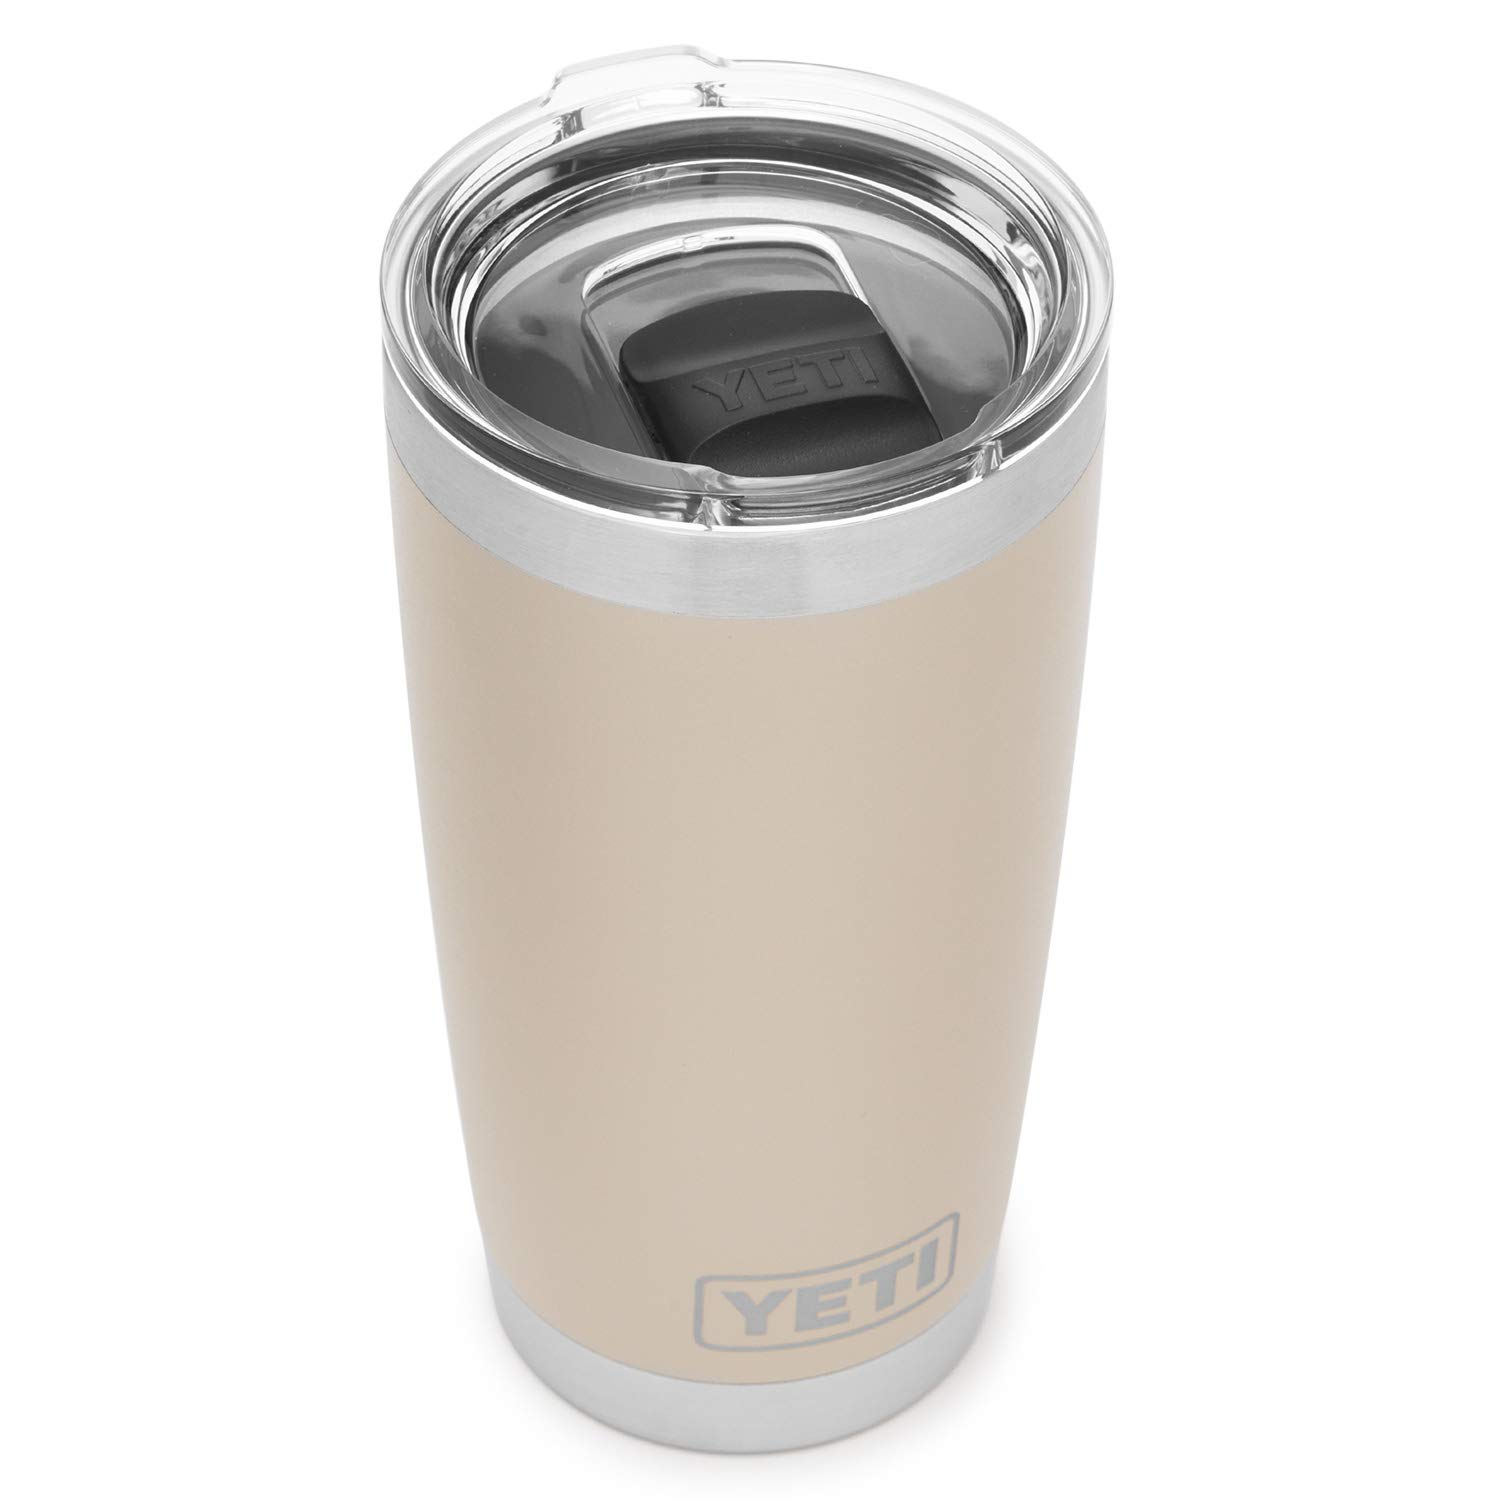 YETI Rambler 20 oz Stainless Steel Vacuum Insulated Tumbler w/MagSlider Lid, Sand by YETI